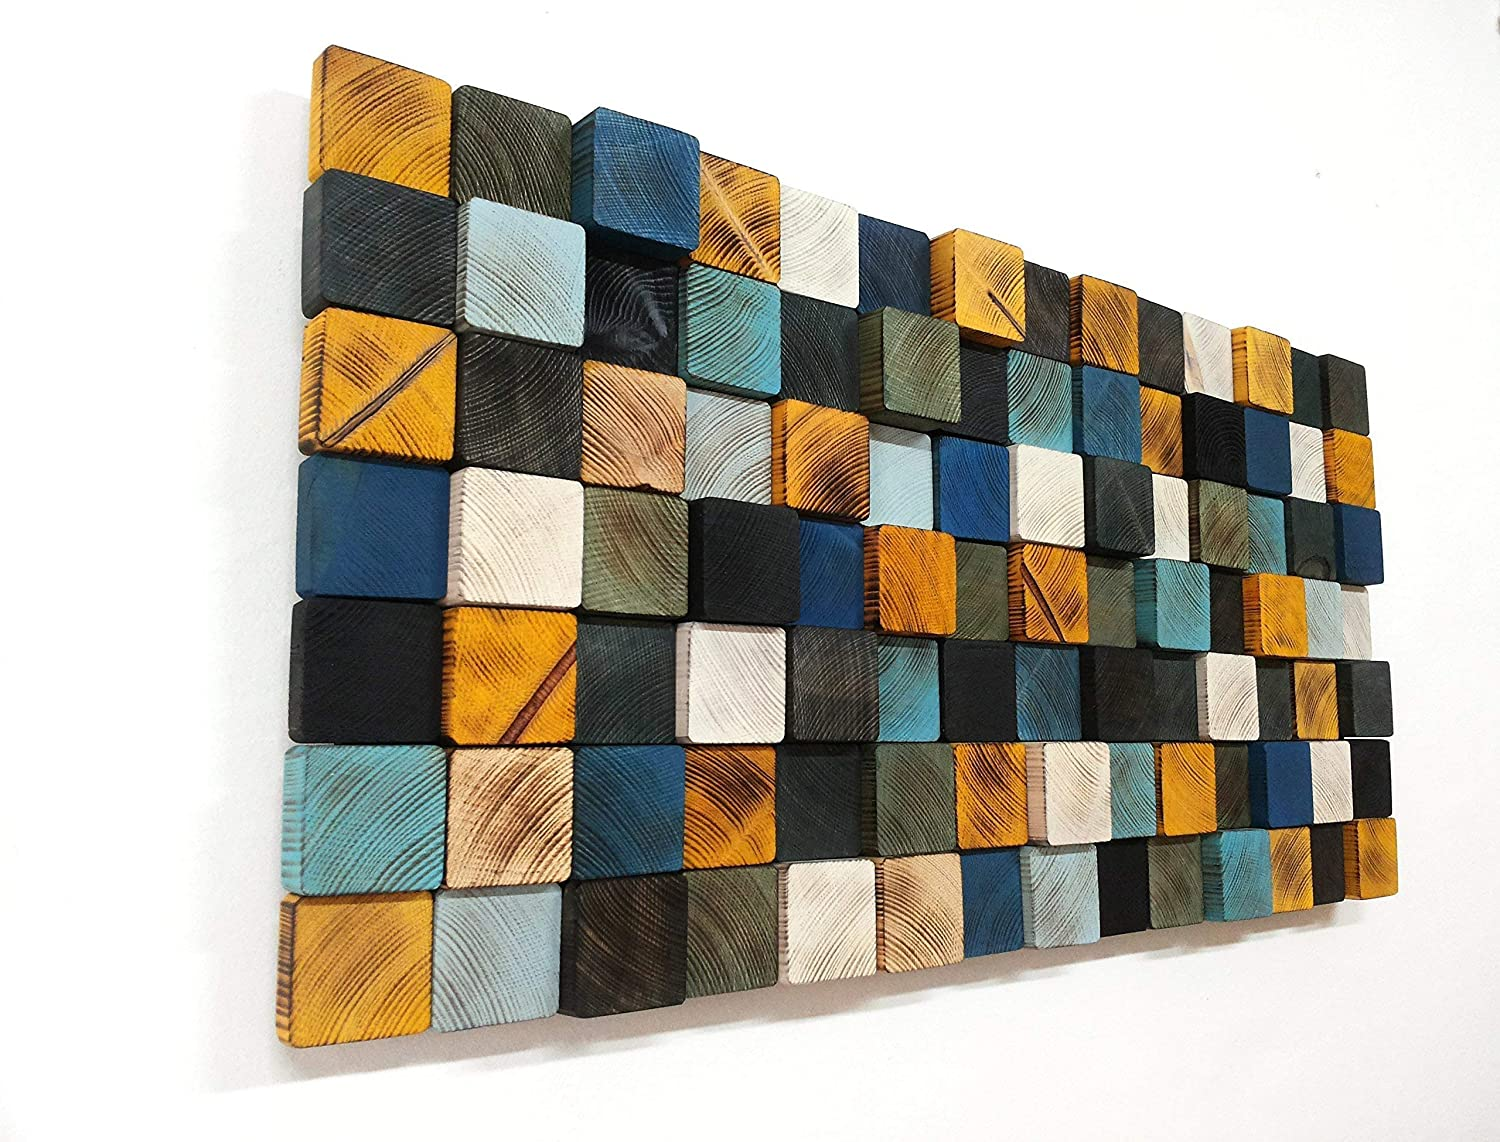 Amazon Com Colorful Wall Art Reclaimed Wooden Wall Decor Wooden Mosaic Futuristic Decor Abstract Wall Art Wooden Wall Art Gift For Family Handmade